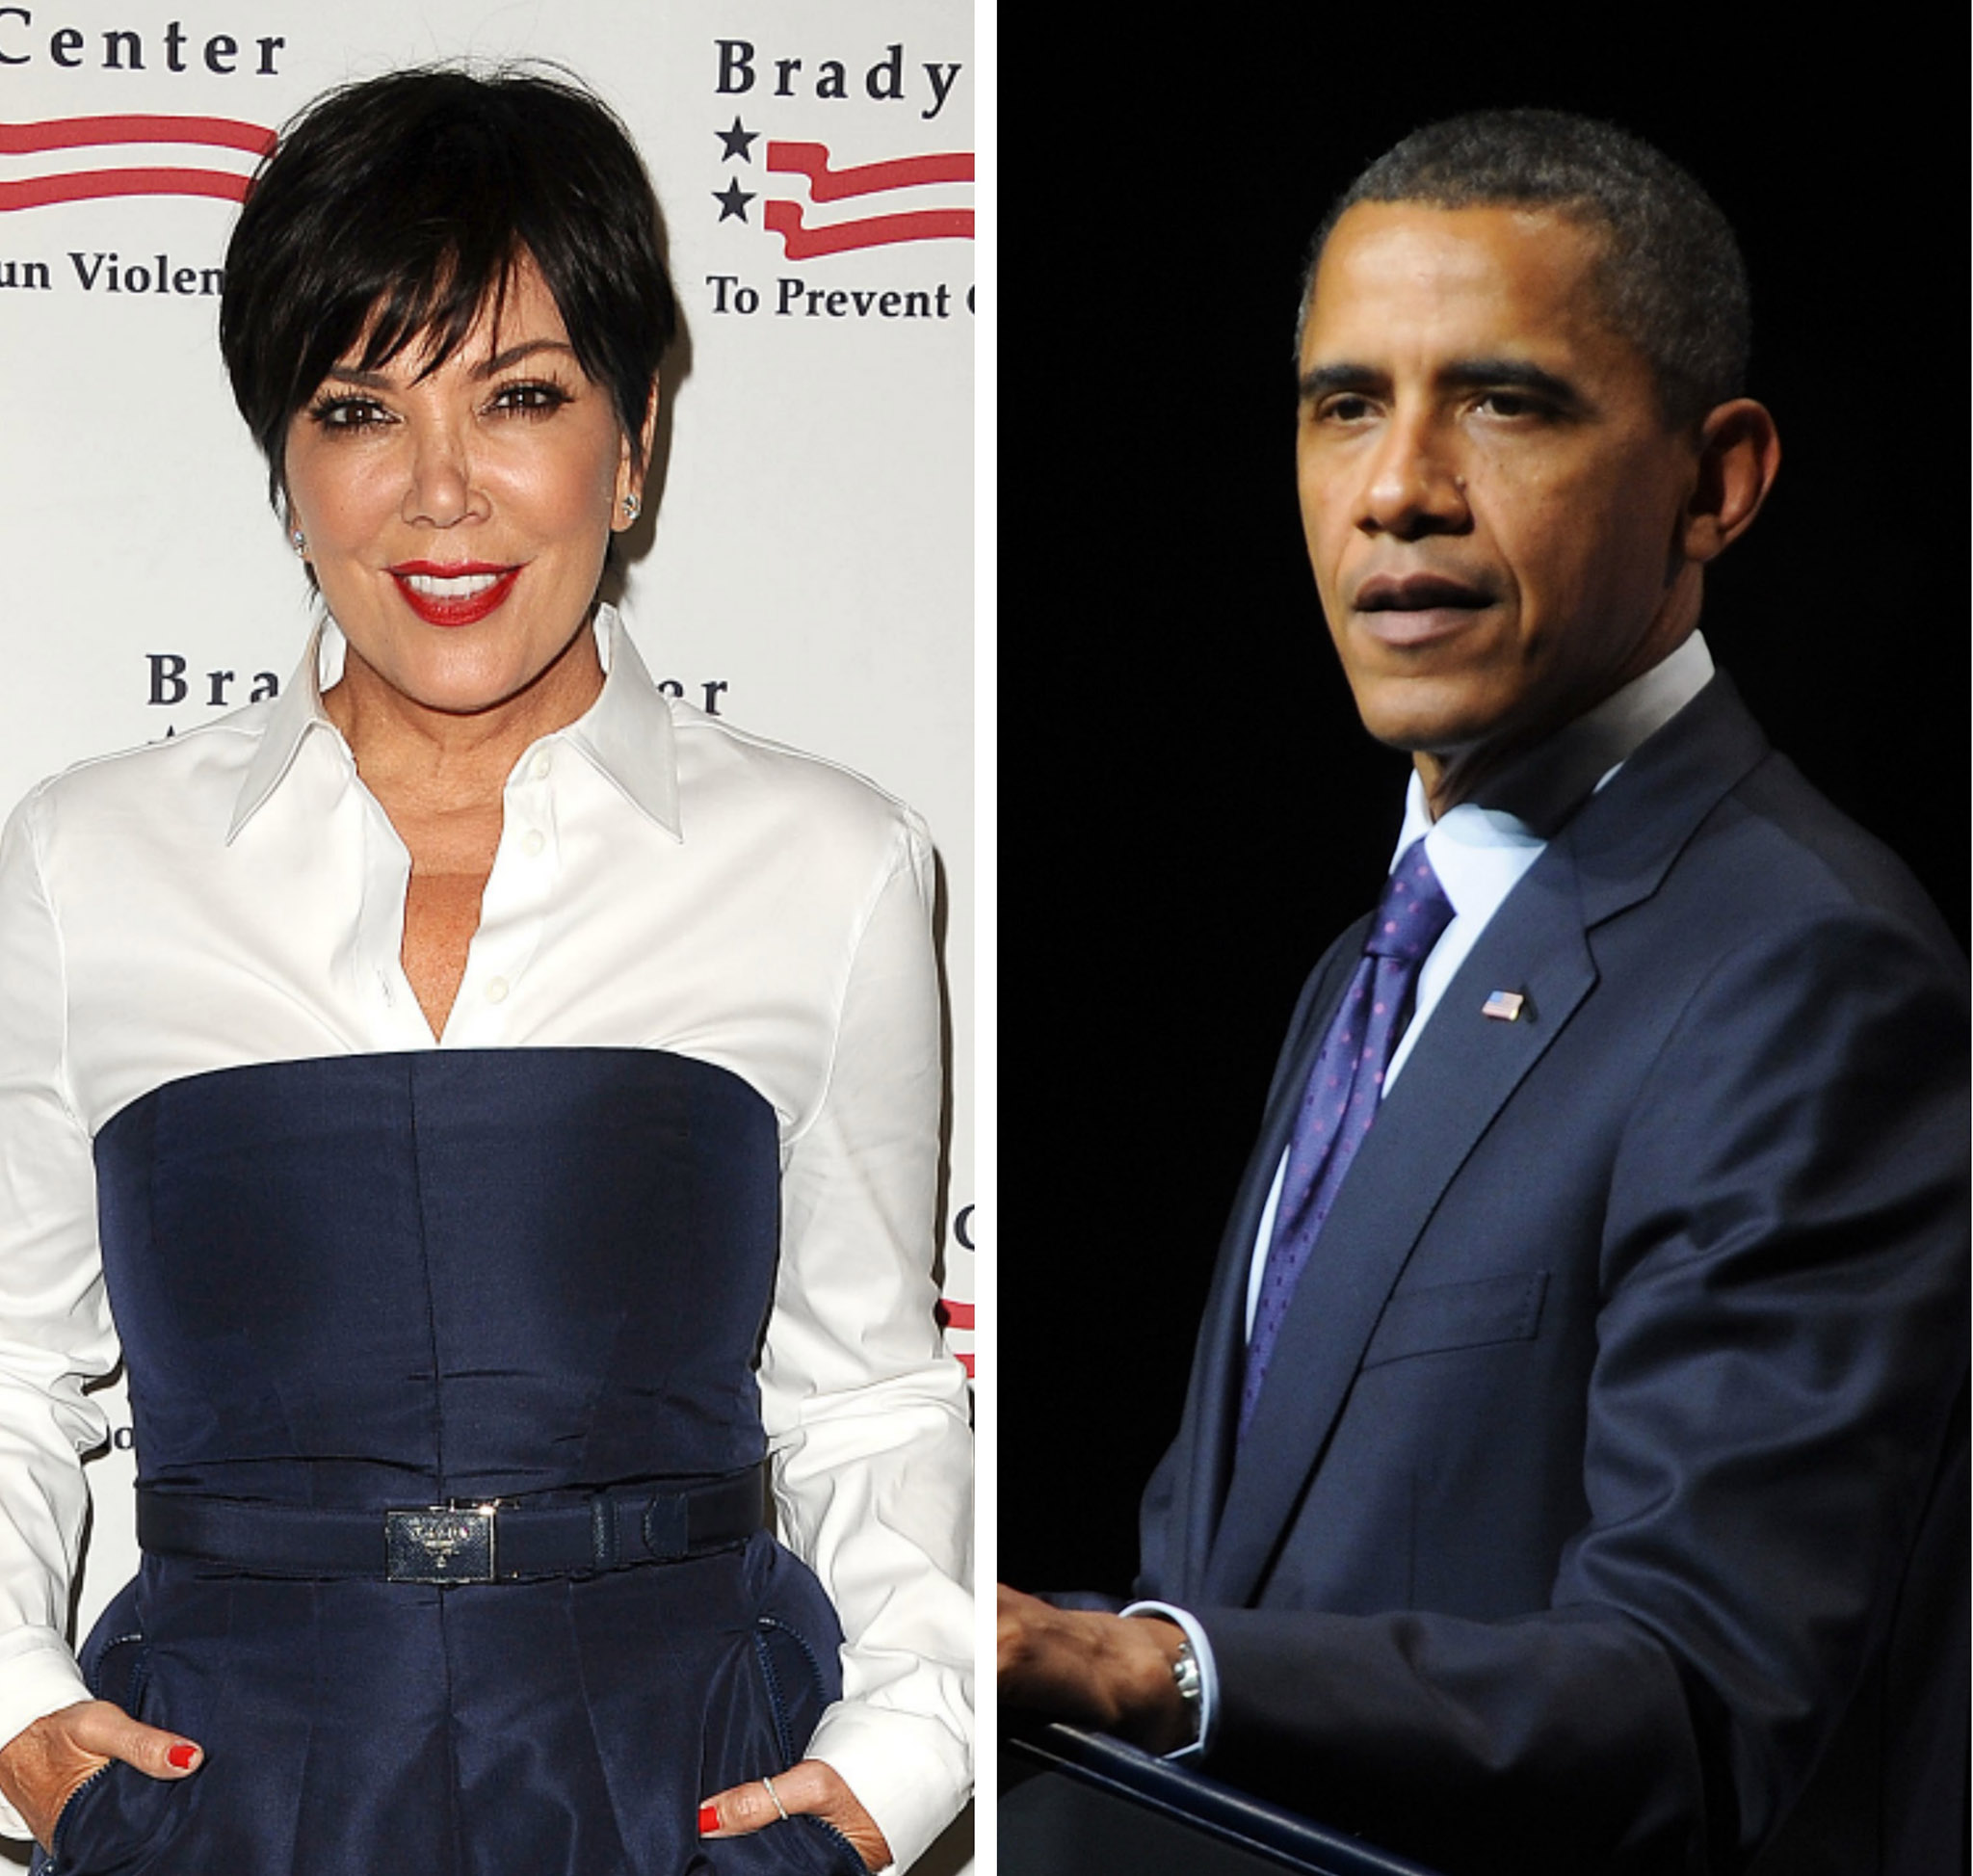 Kris Jenner and Barack Obama (Getty Images)